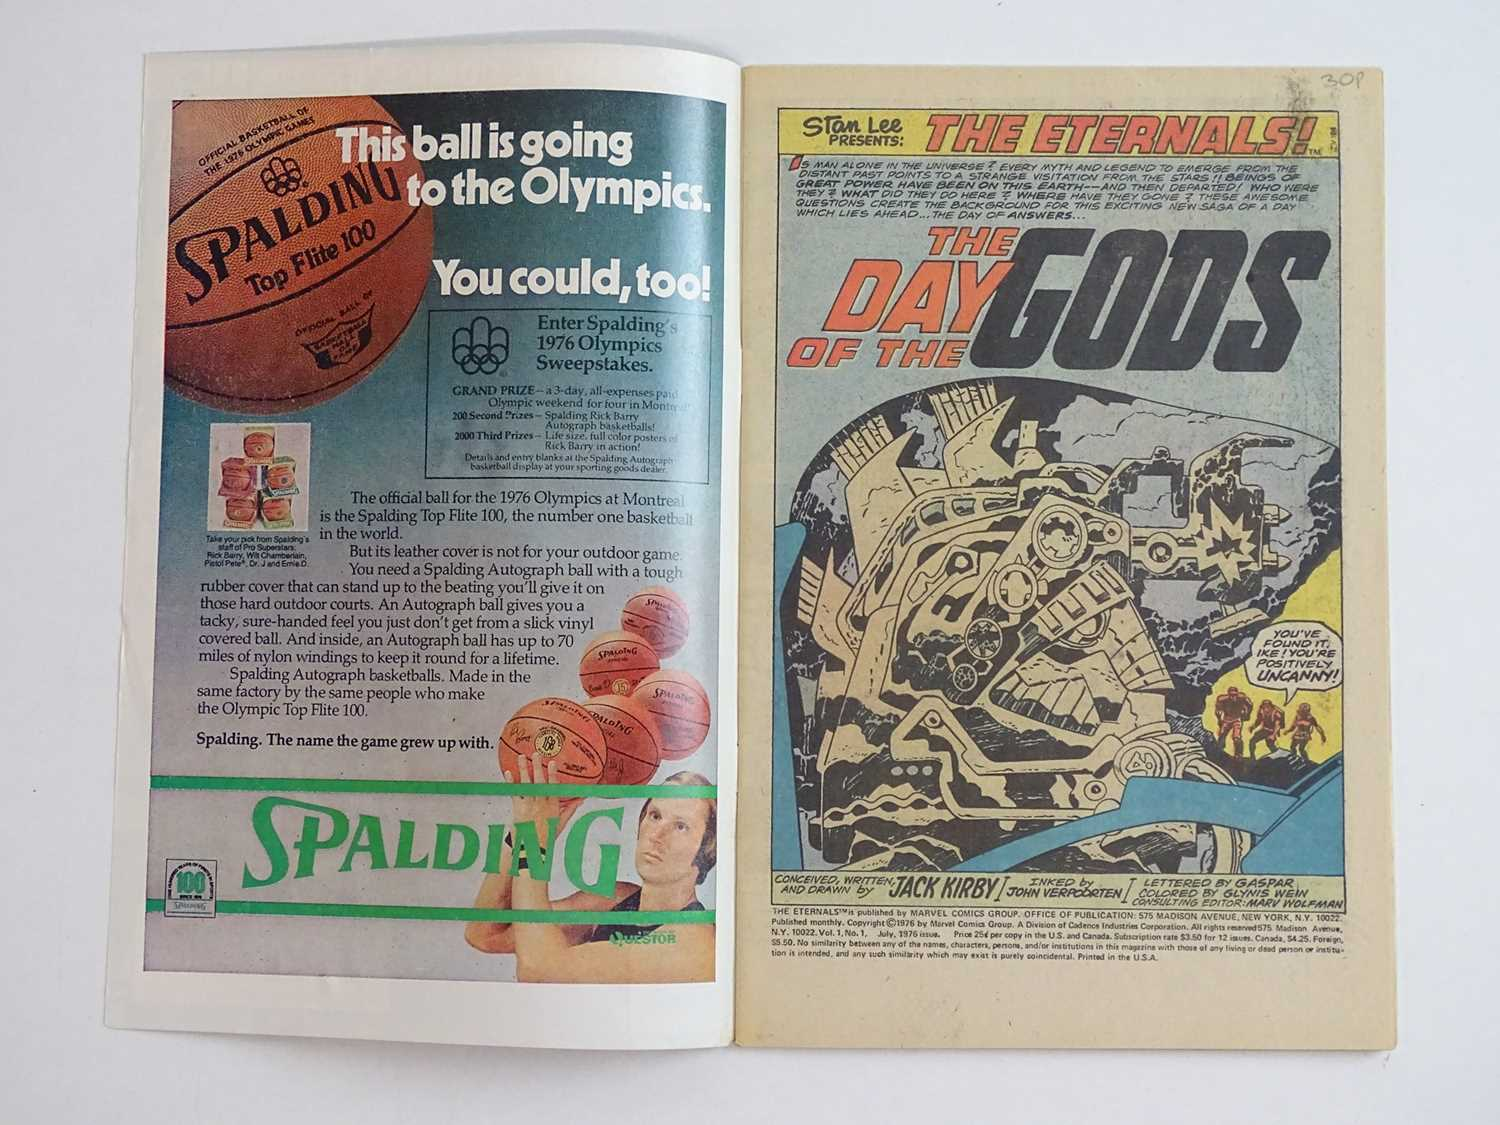 ETERNALS #1 - (1976 - MARVEL) - HOT Key book + Origin and First appearances of the Eternals (Ikaris, - Image 3 of 9